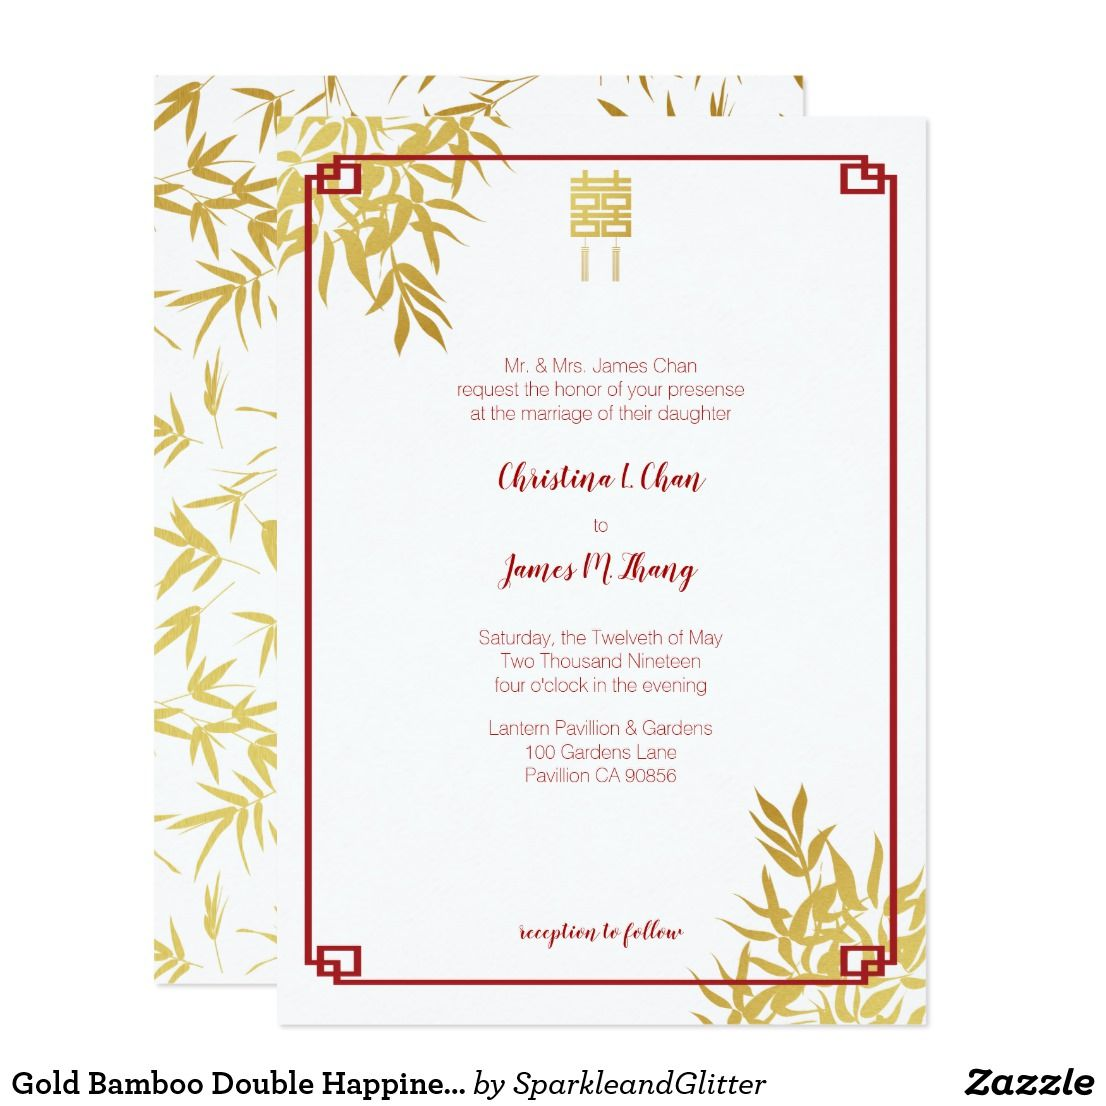 Gold Bamboo Double Happiness Chinese Wedding Invitation